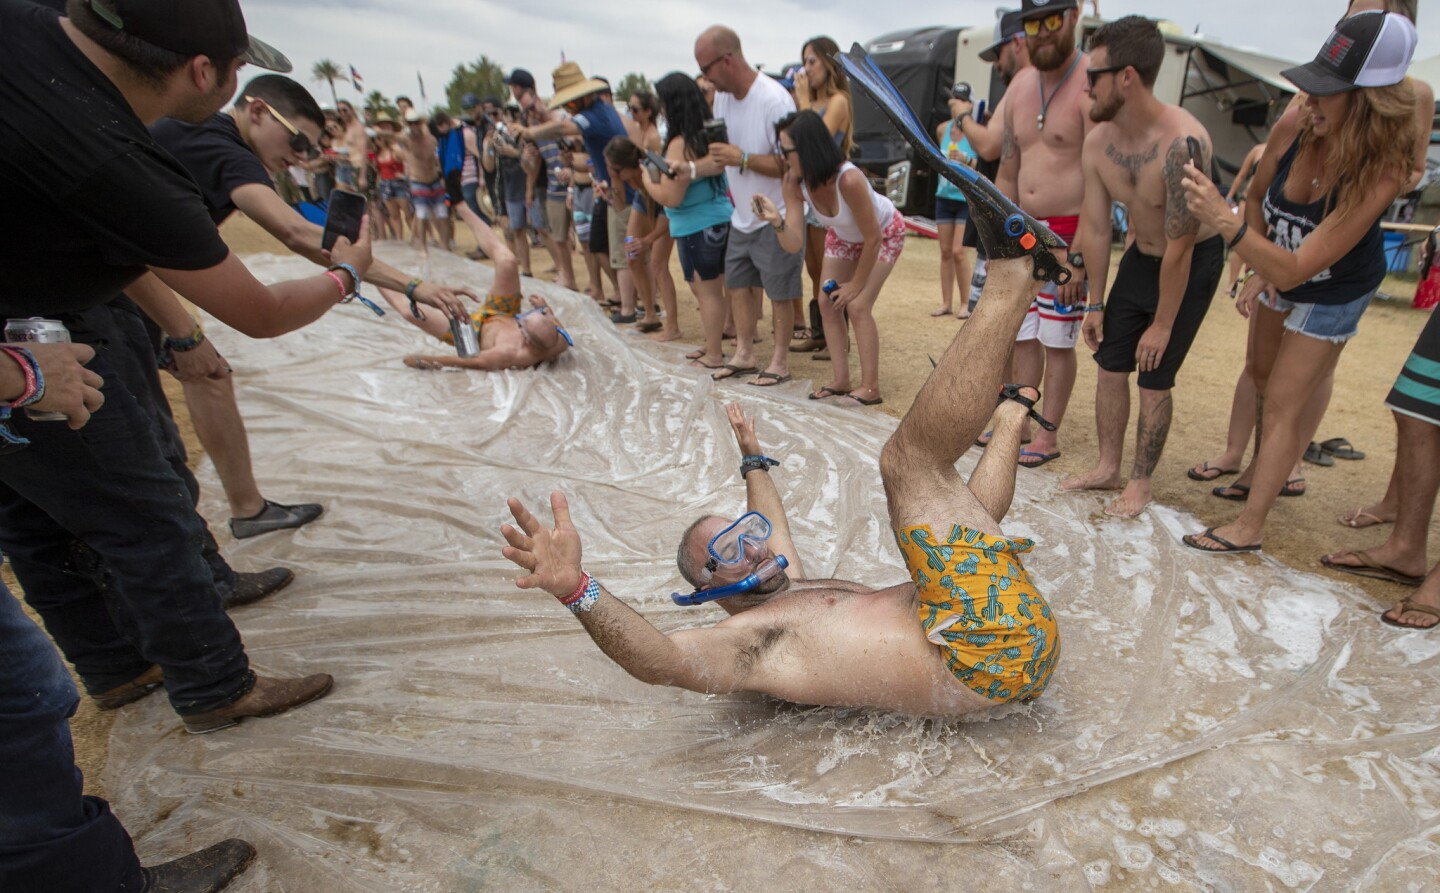 Photos: Faces of Stagecoach 2019: Country music fans come